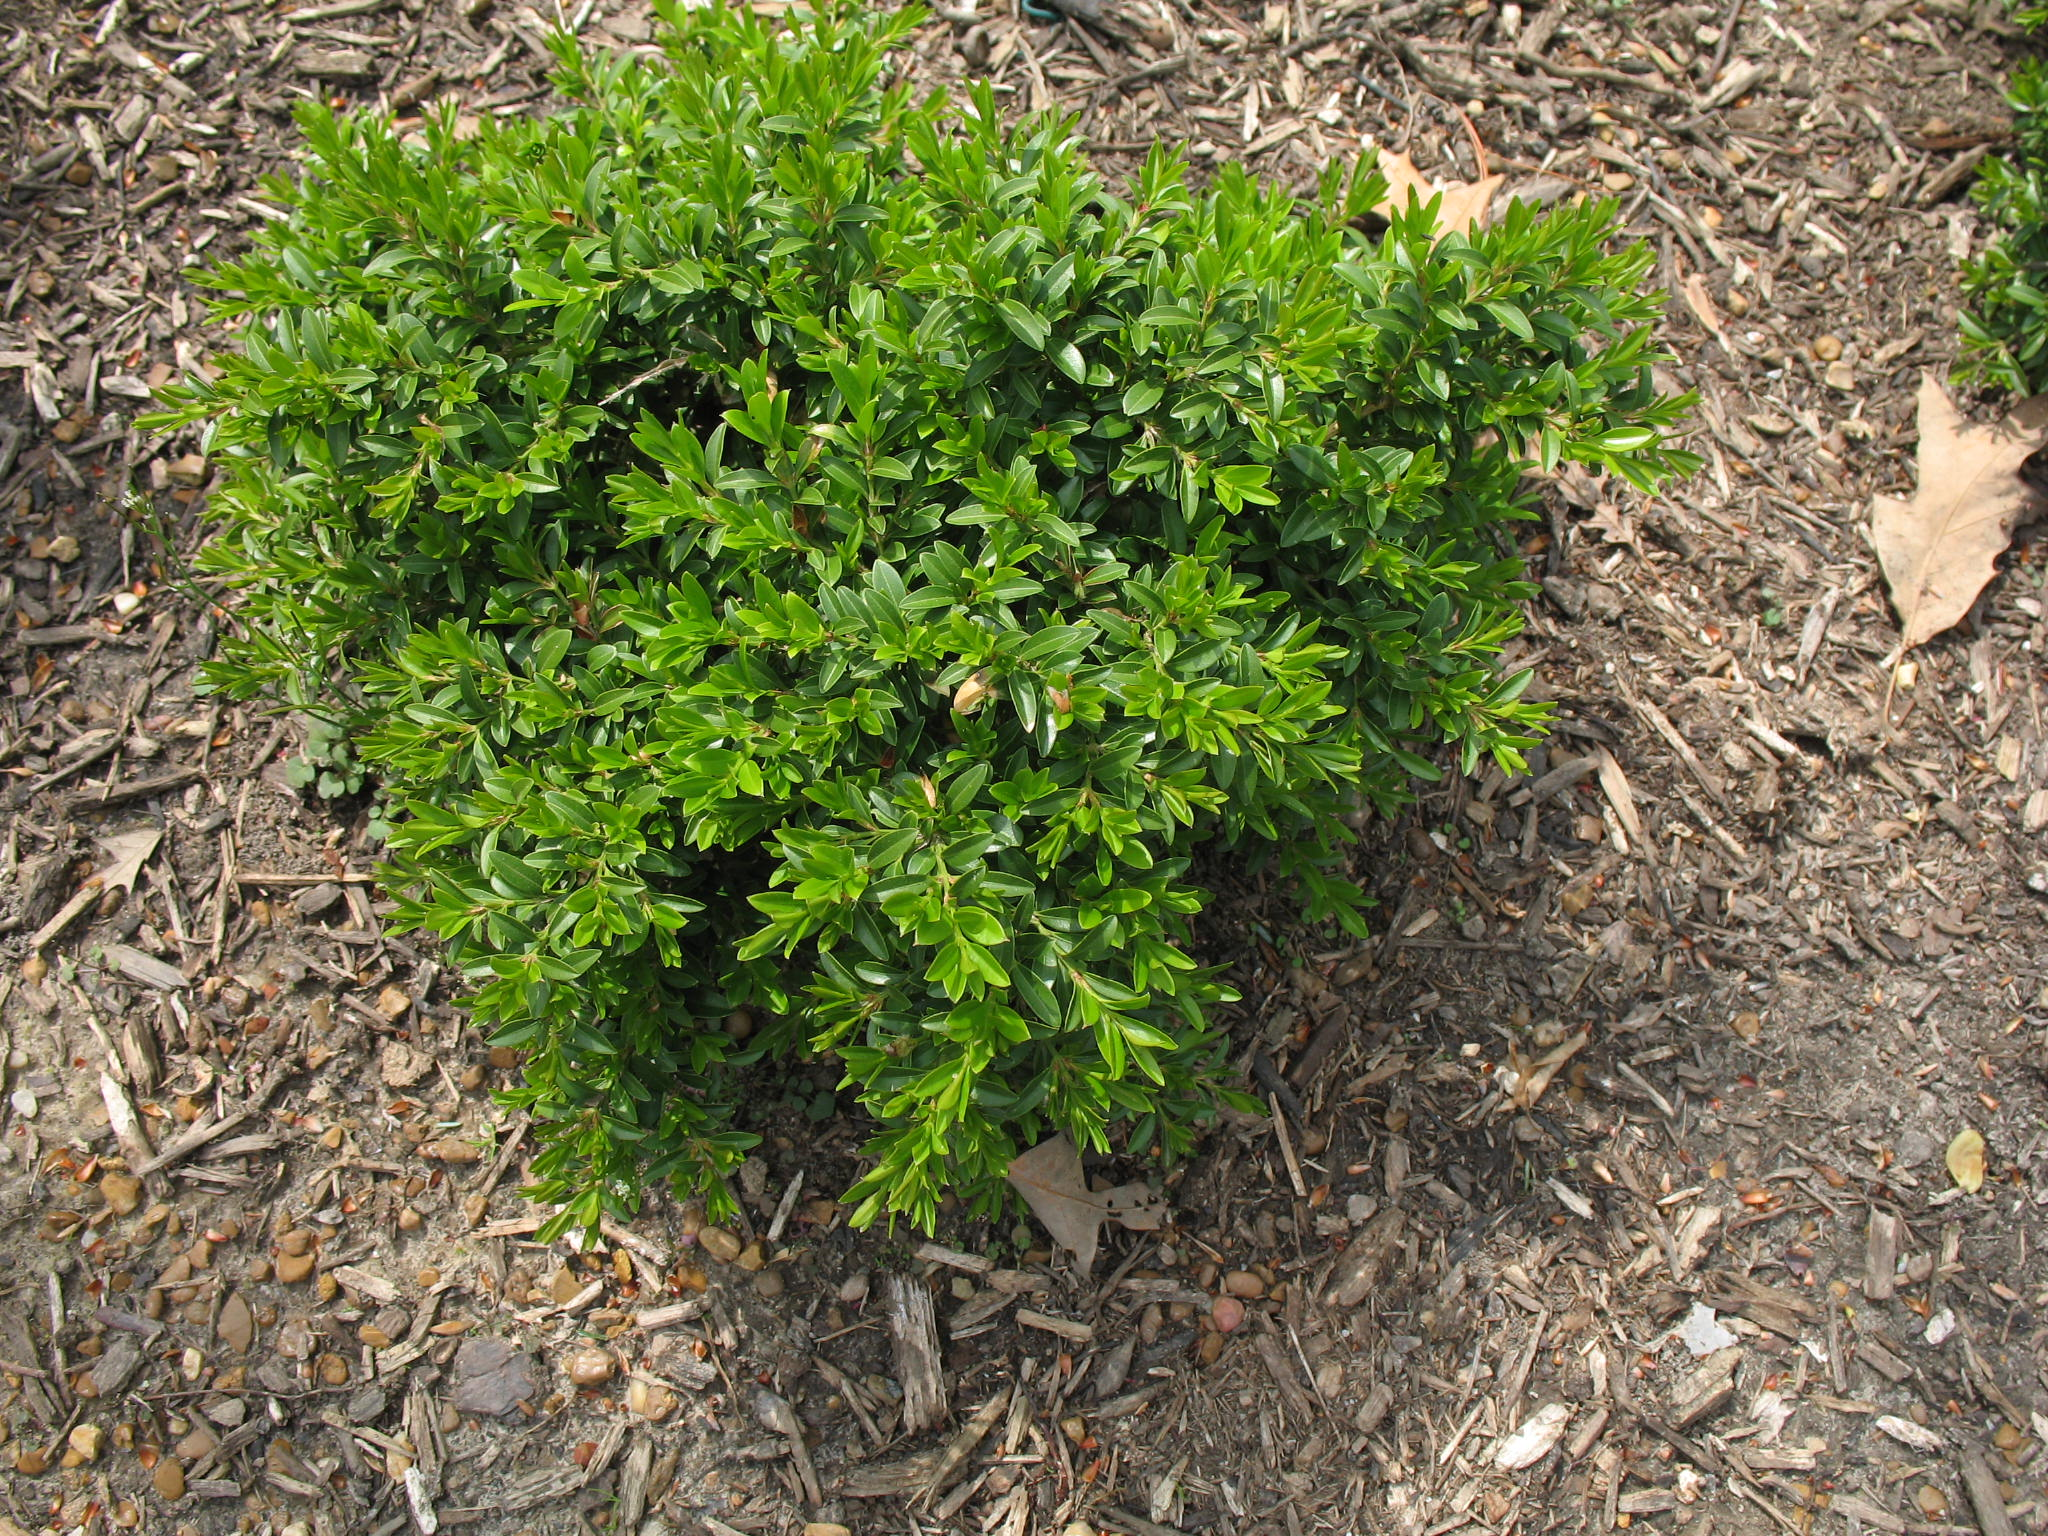 Buxus microphylla 'Grace Hendrick Phillips'  / Buxus microphylla 'Grace Hendrick Phillips'